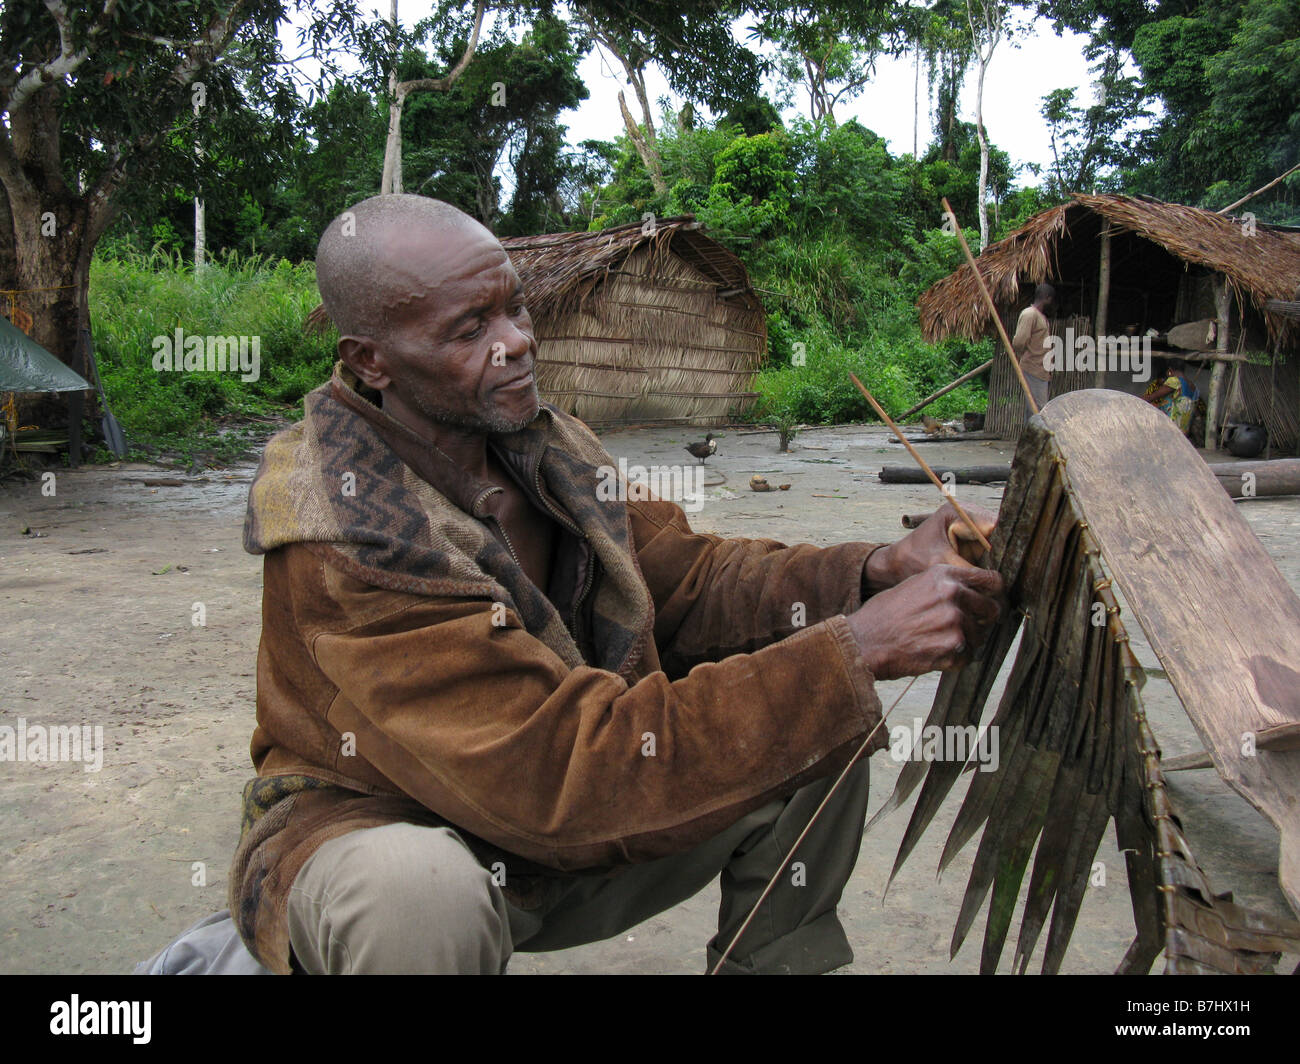 Headman of tiny village weaving waterproof roofing from jungle grasses on Sumba Island Democratic Republic of & Headman of tiny village weaving waterproof roofing from jungle ... memphite.com